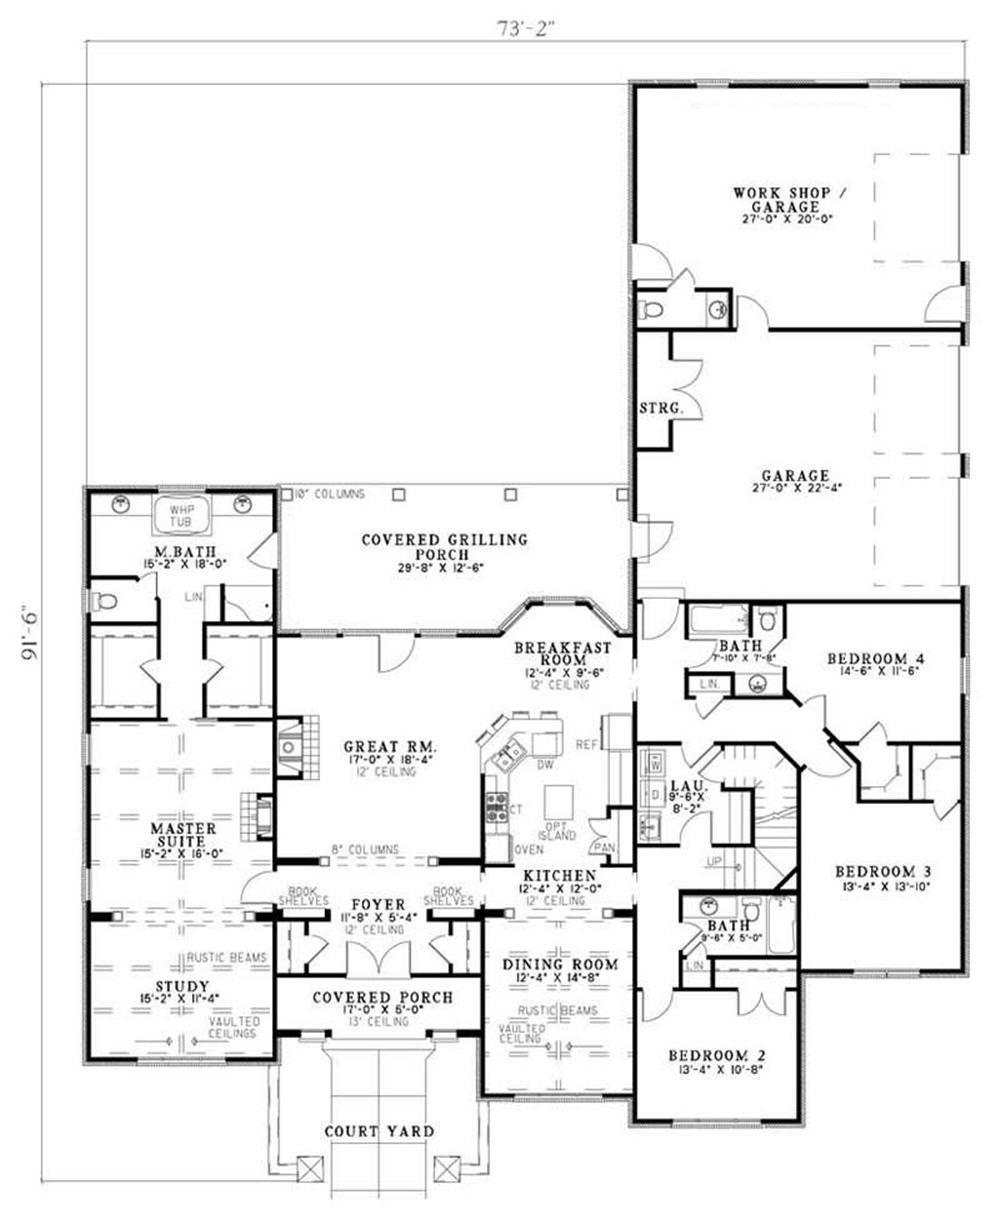 House Plan NDG-1142 Main Floor Plan